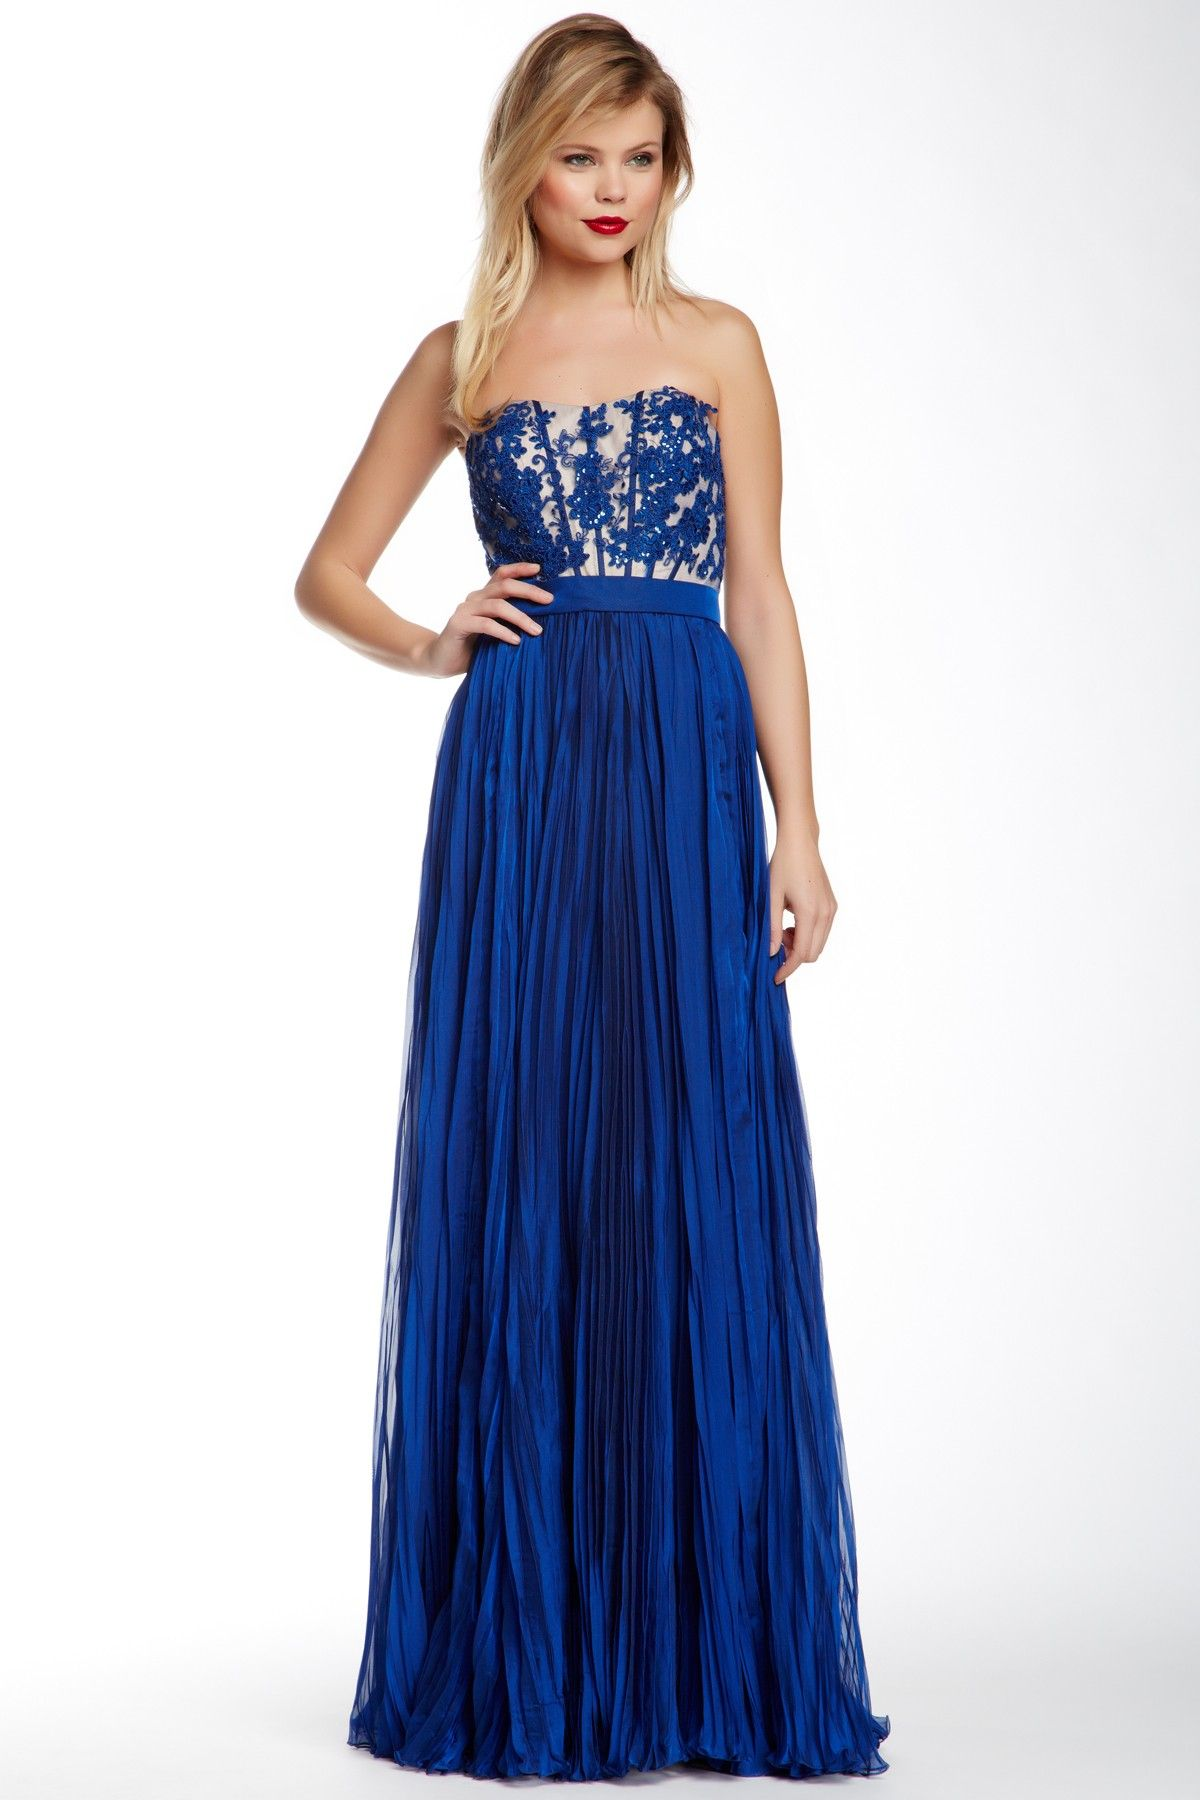 9f7da46d59ea Strapless Pleated Gown by La Femme in Marine Blue